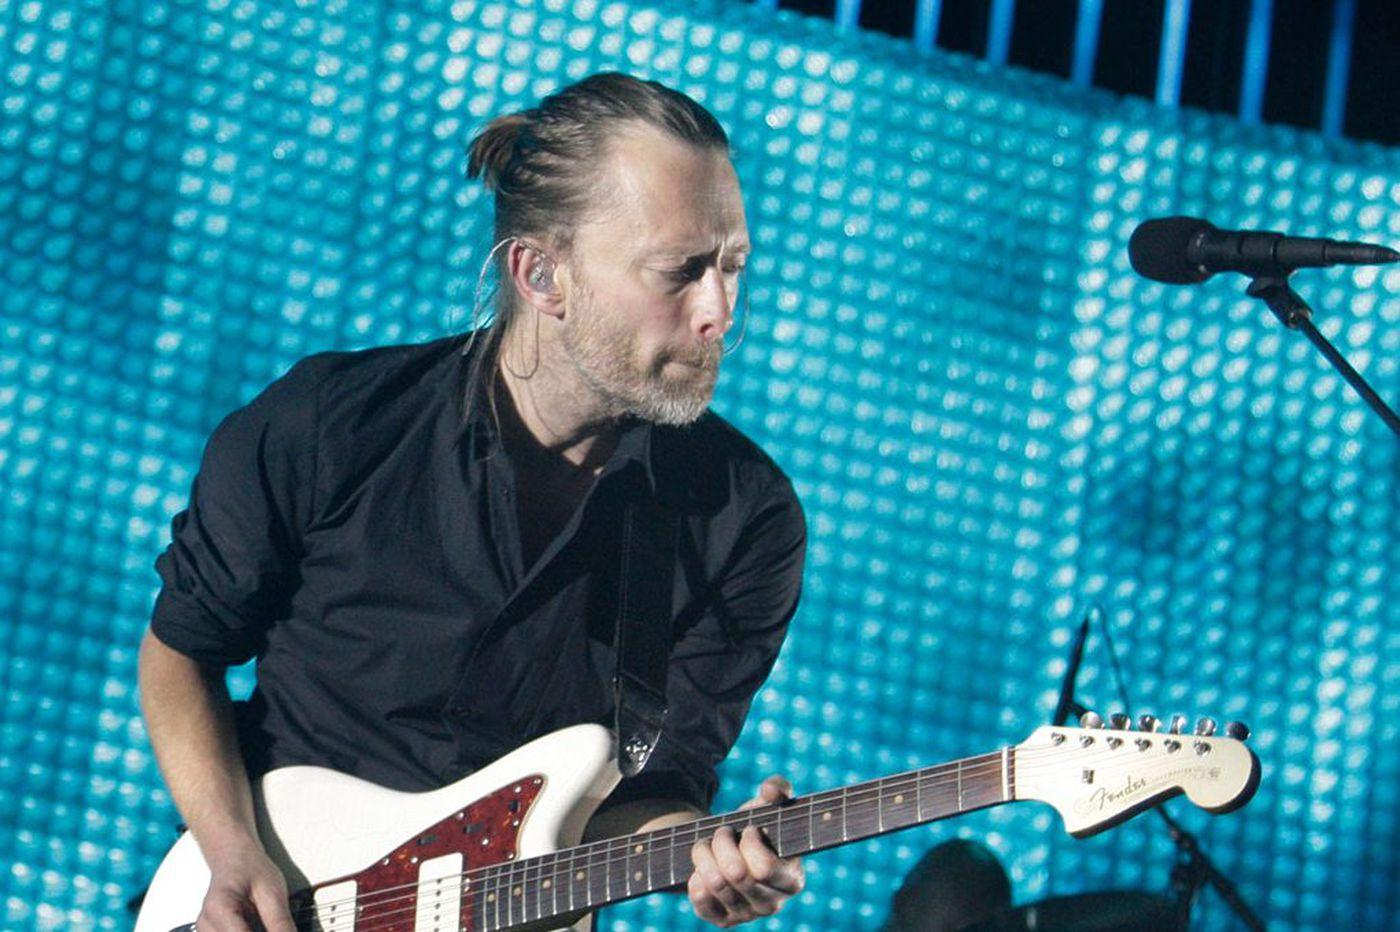 Radiohead to play first Philly shows since 2012 at Wells Fargo Center this summer